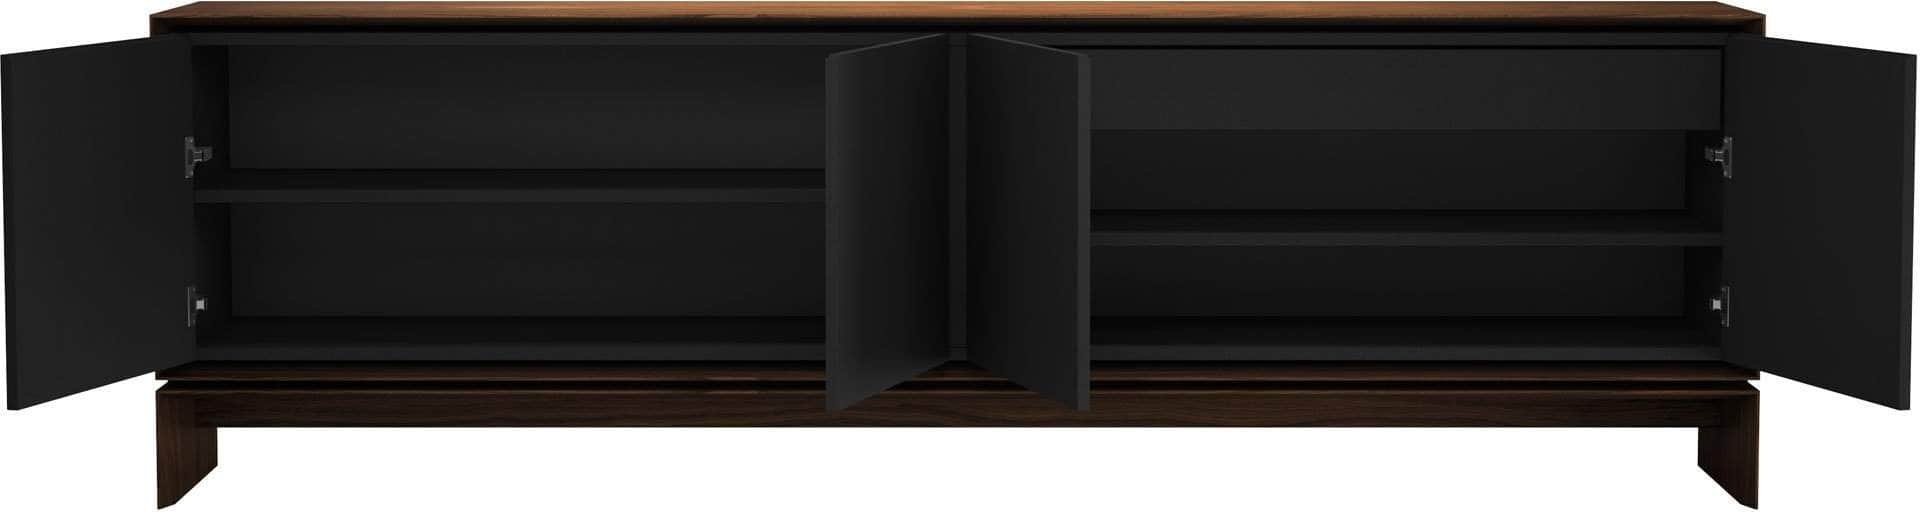 Pending - Modloft Sideboards Barnes Sideboard - Available in 2 Colors